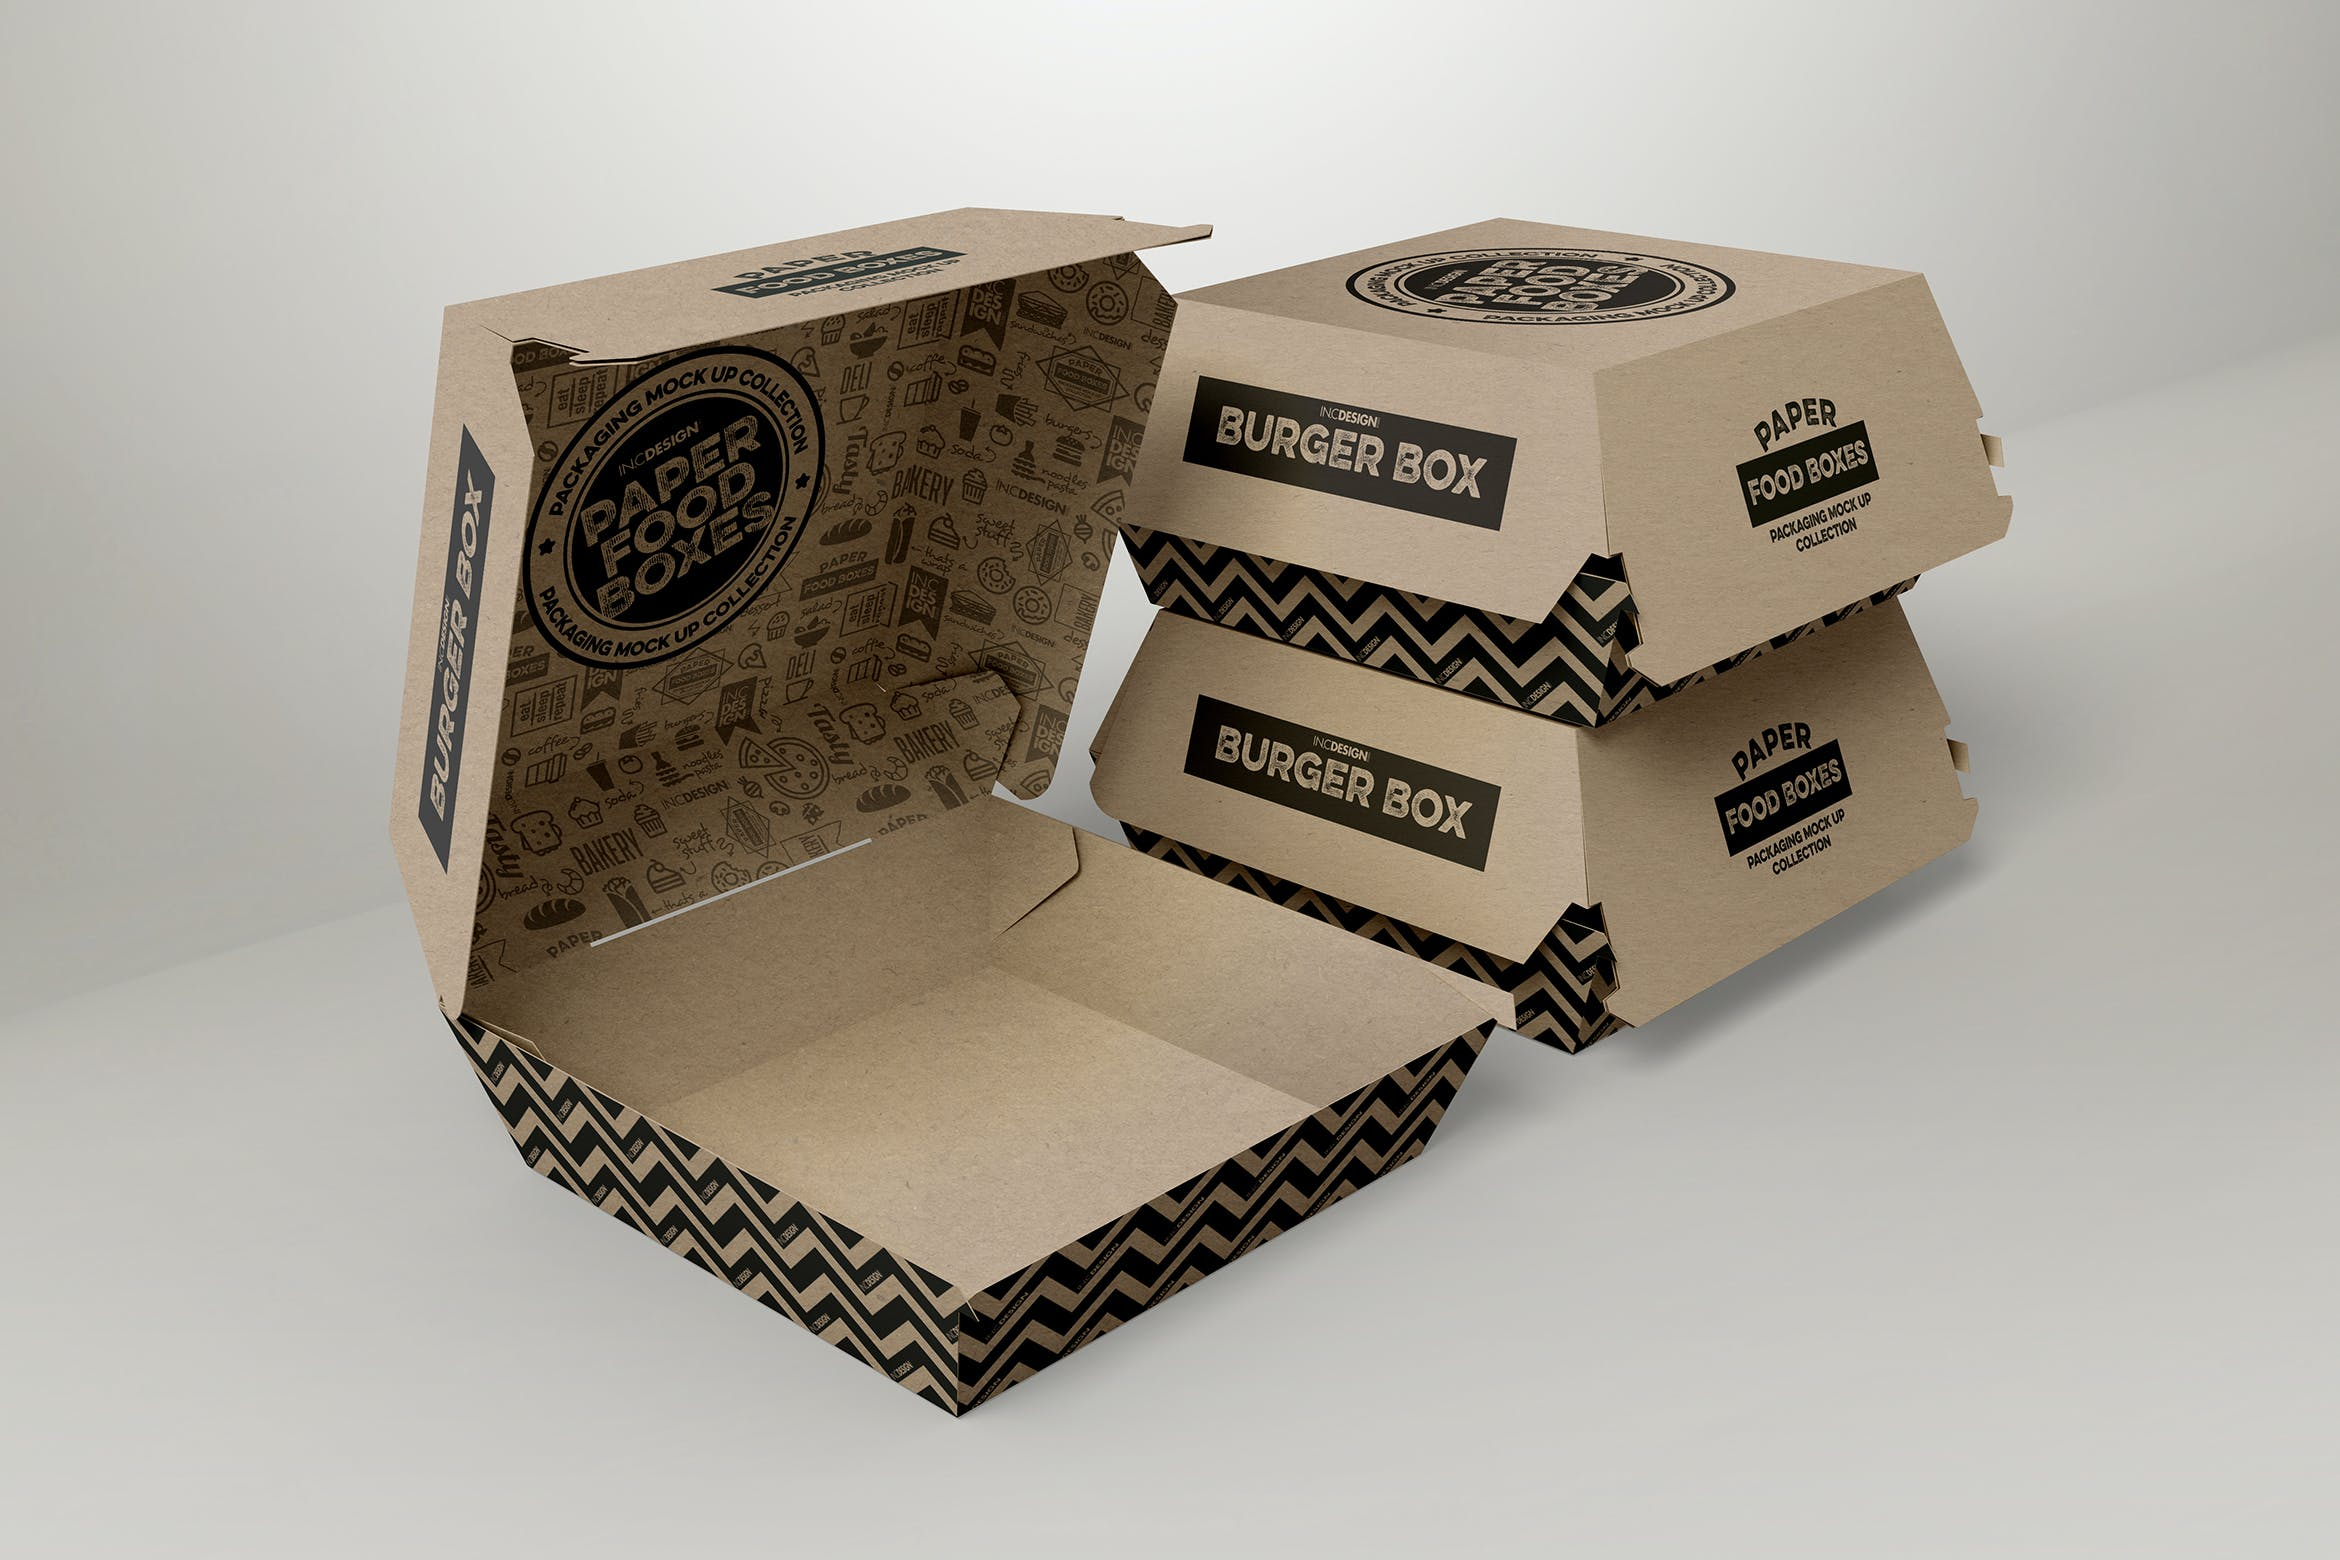 Burger Box Packaging Mockup By Ina717 On Envato Elements